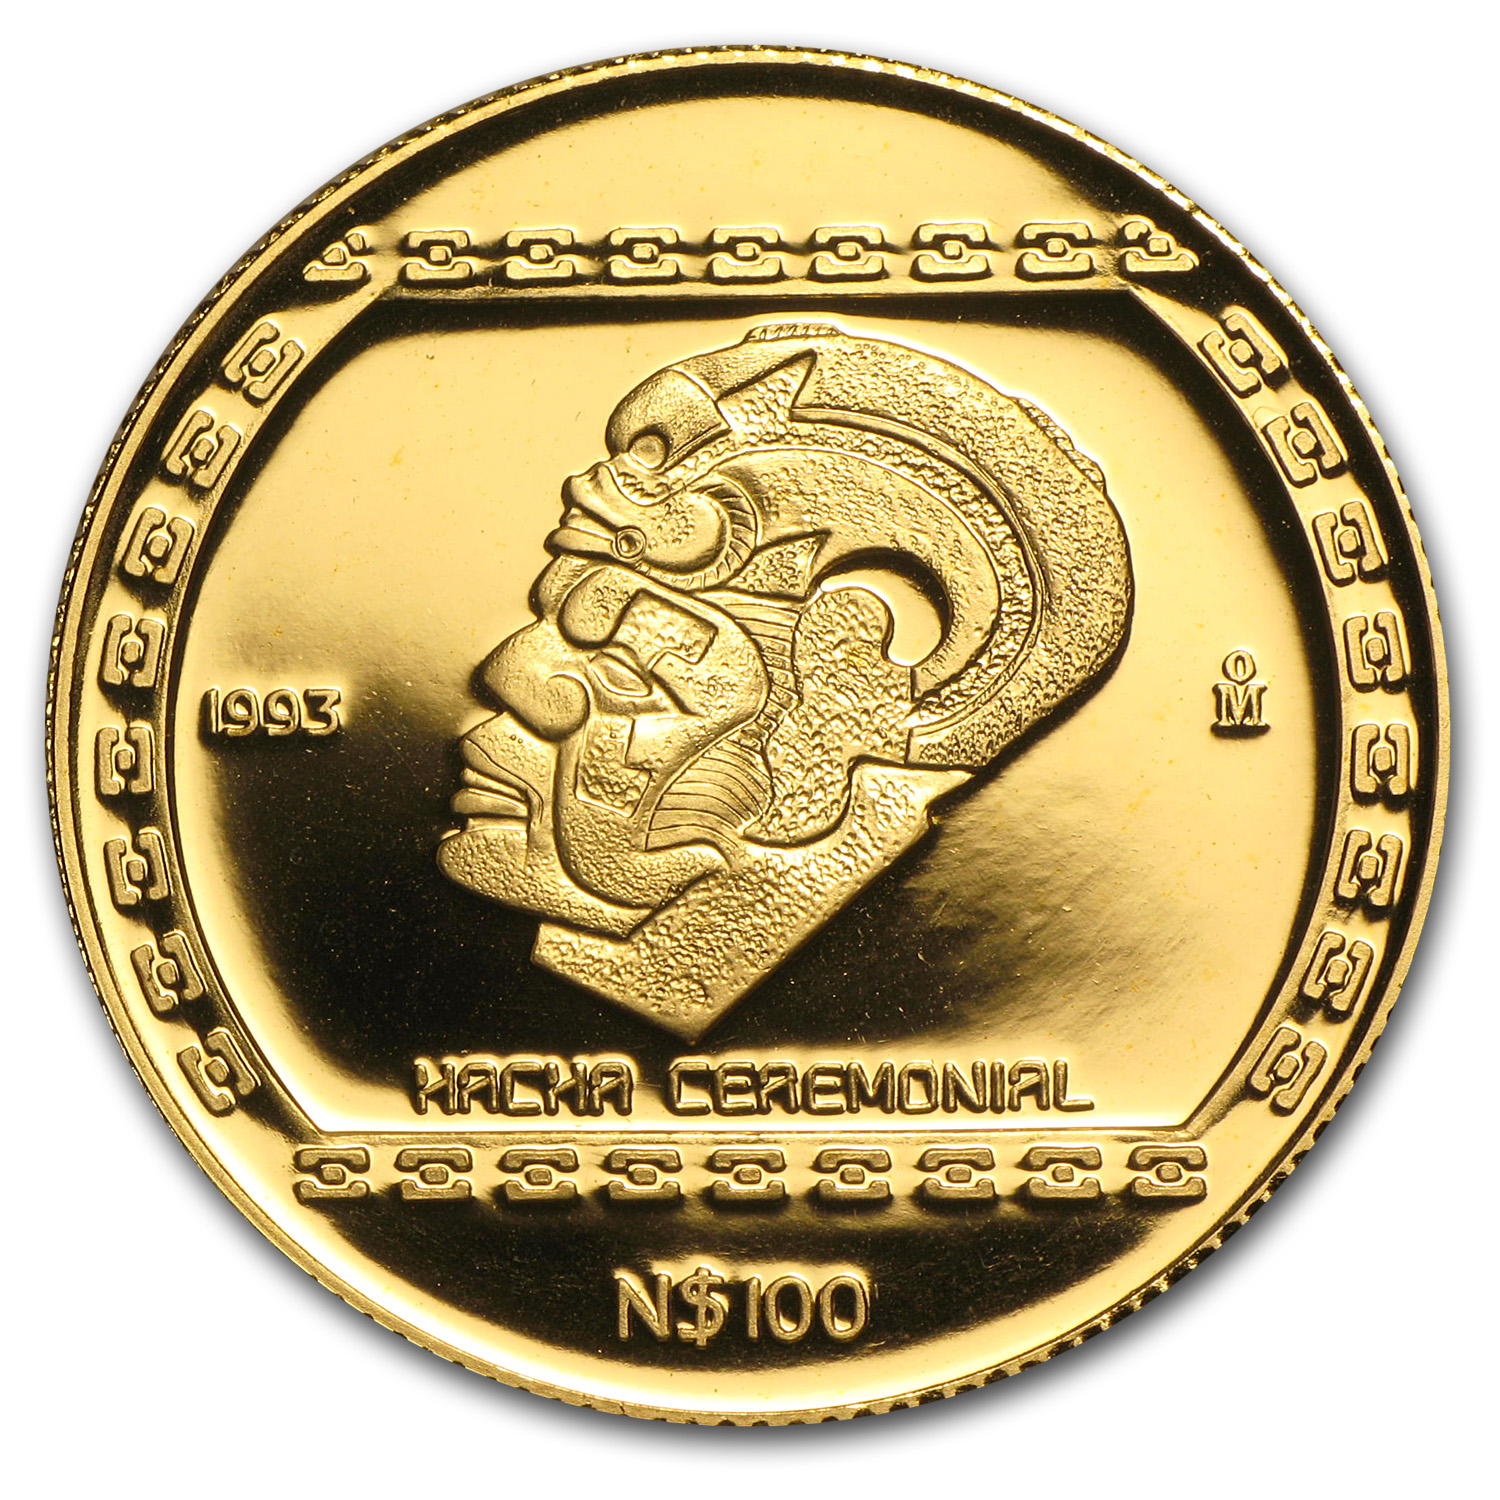 1993 Mexico 100 Pesos Gold Hacha Ceremonial Proof